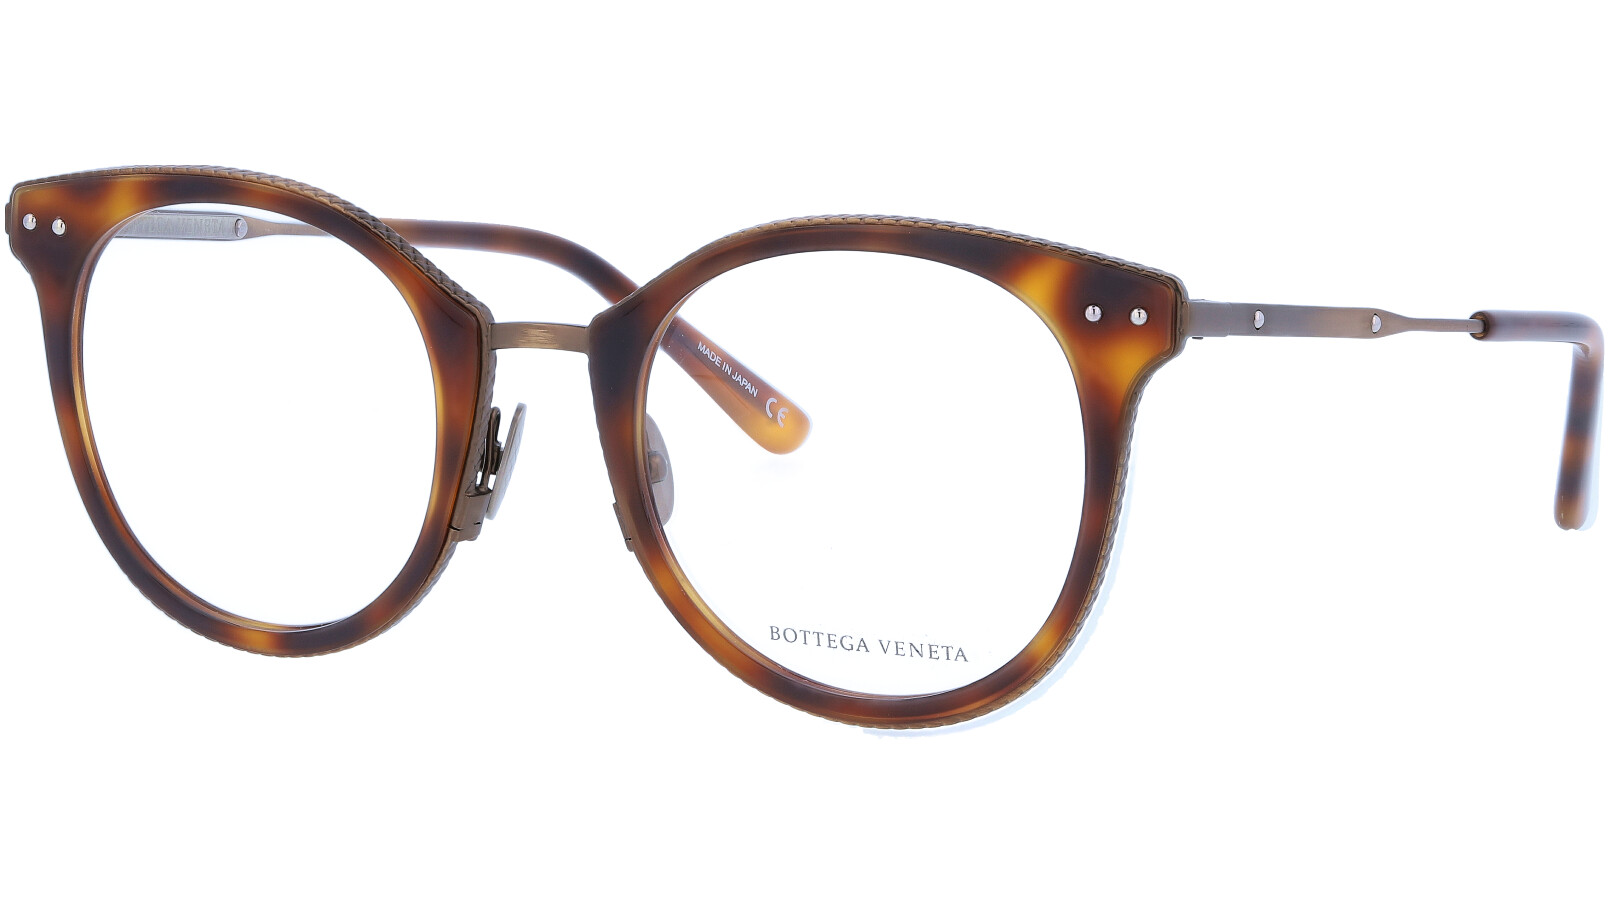 BOTTEGA VENETA BV0066O 002 50 AVANA Glasses